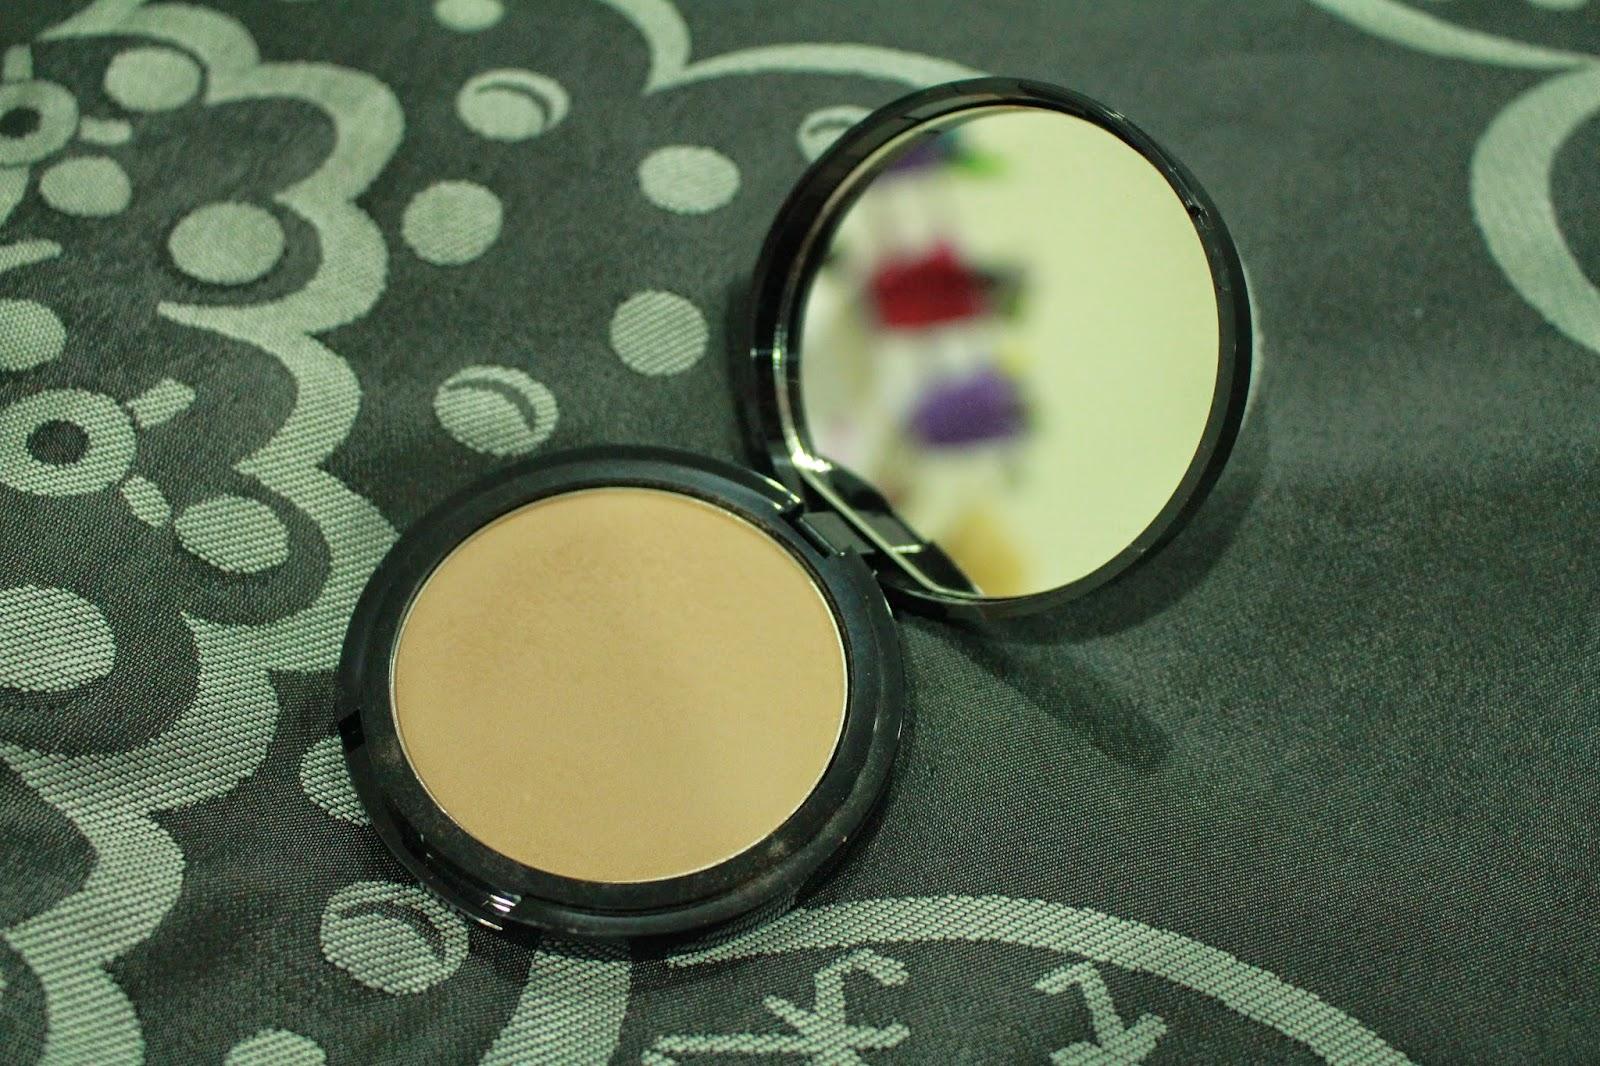 NYX Blotting Powder in the shade Deep